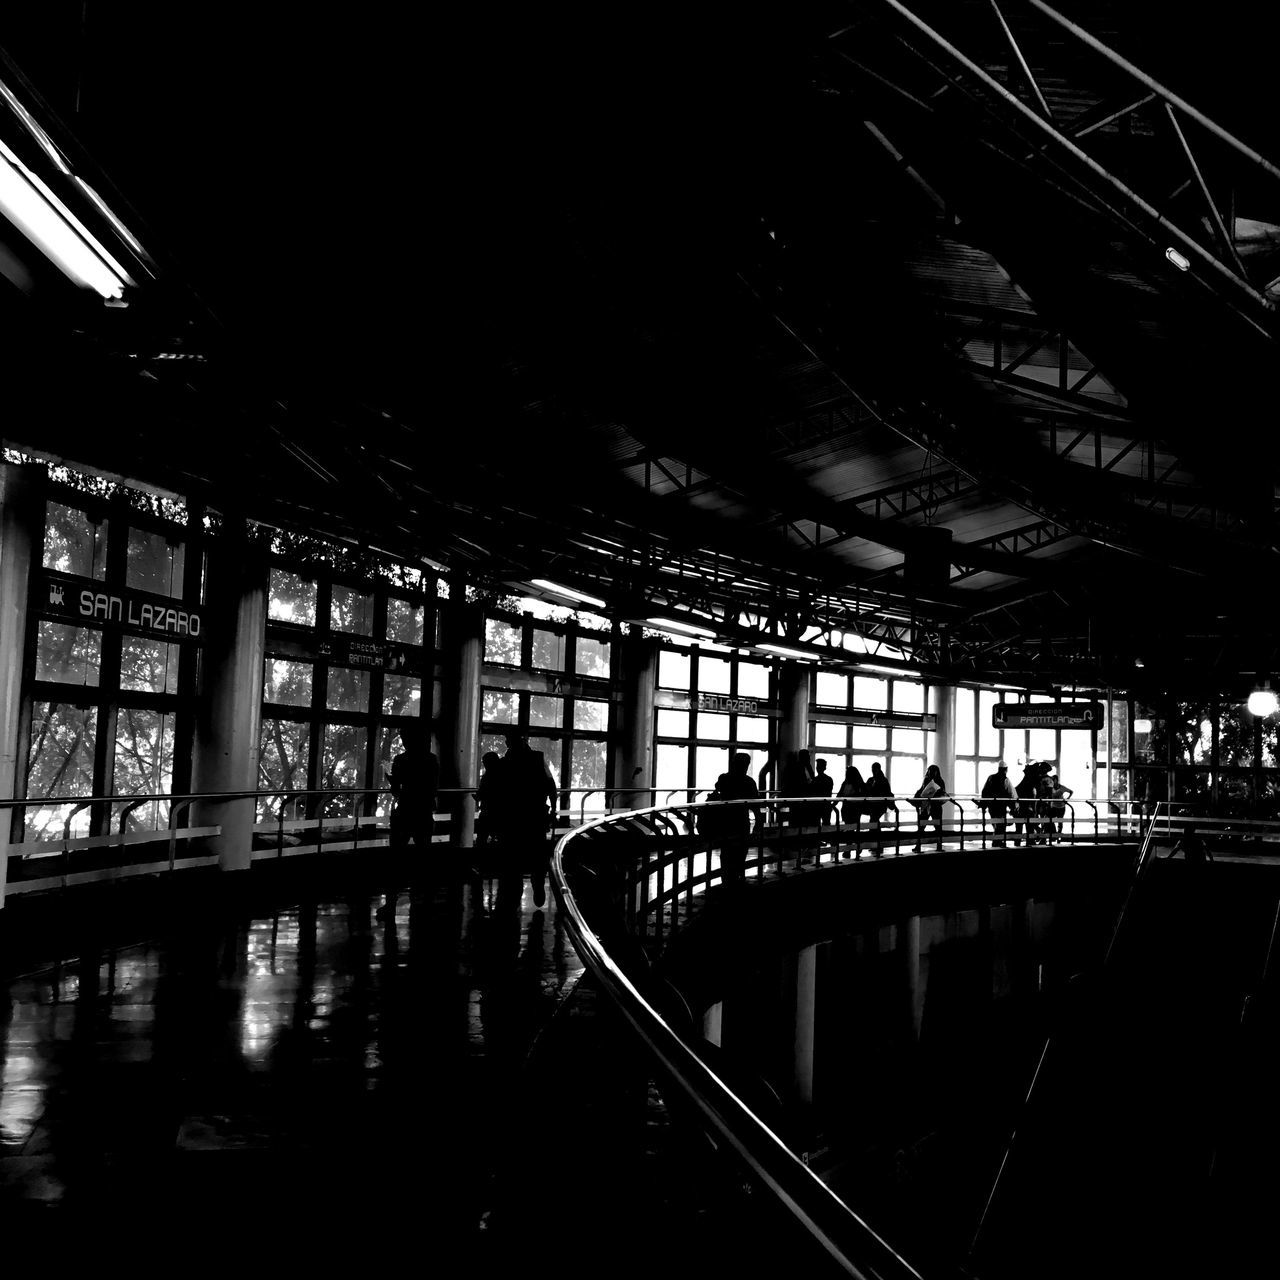 Siempre la luz ! Large Group Of People EyeEm Best Shots EyeEm Best Shots - Black + White Public Transportation Blackandwhite Architecture